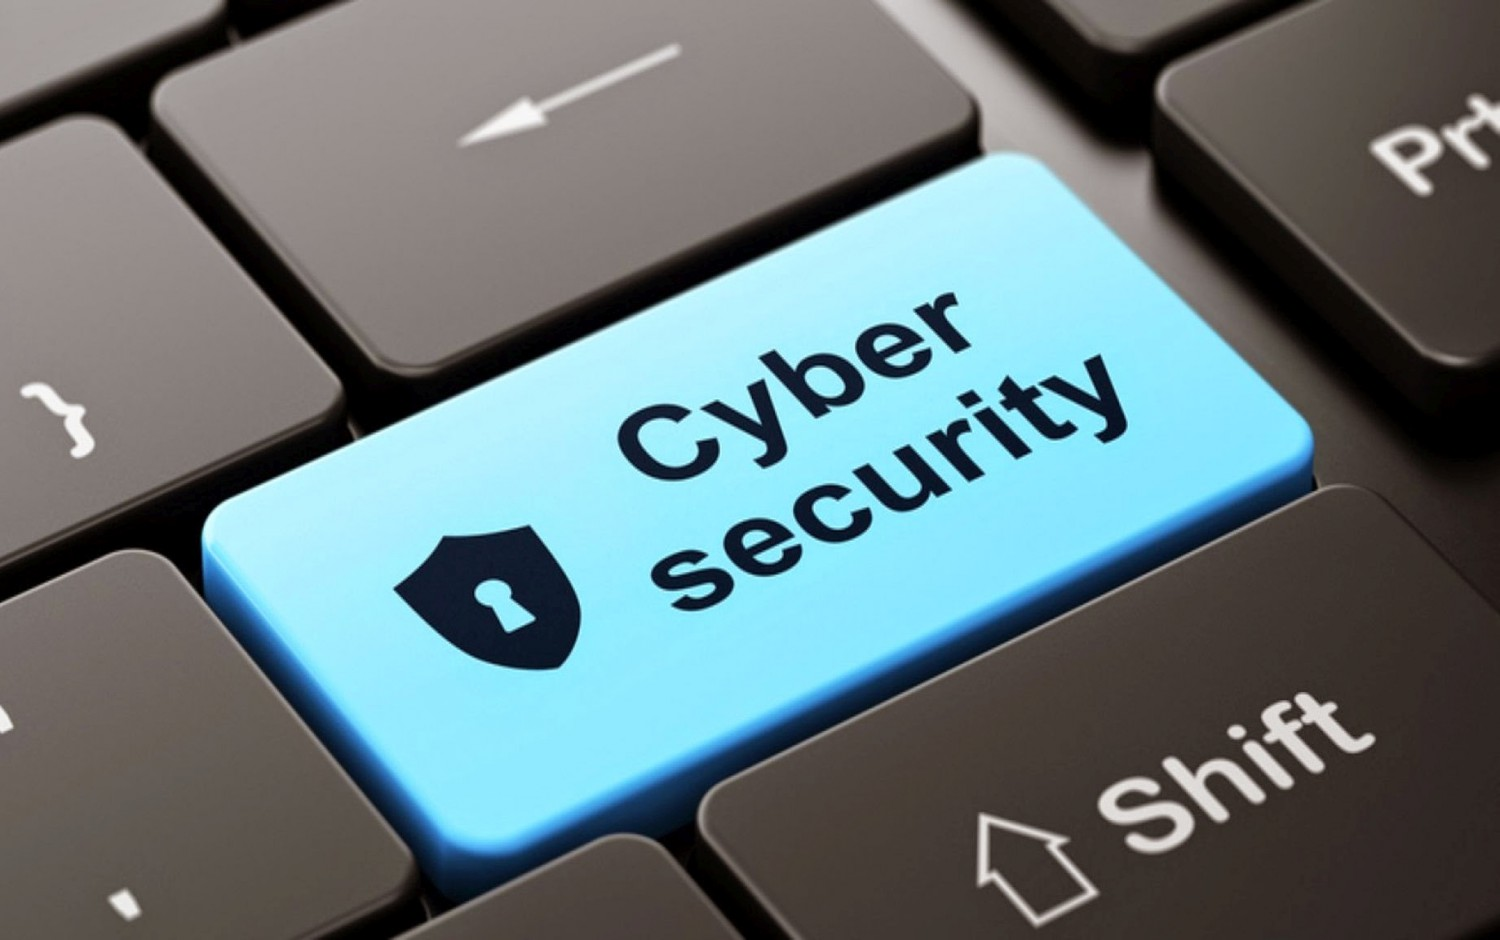 Cyber security - Sicurezza informatica Imc